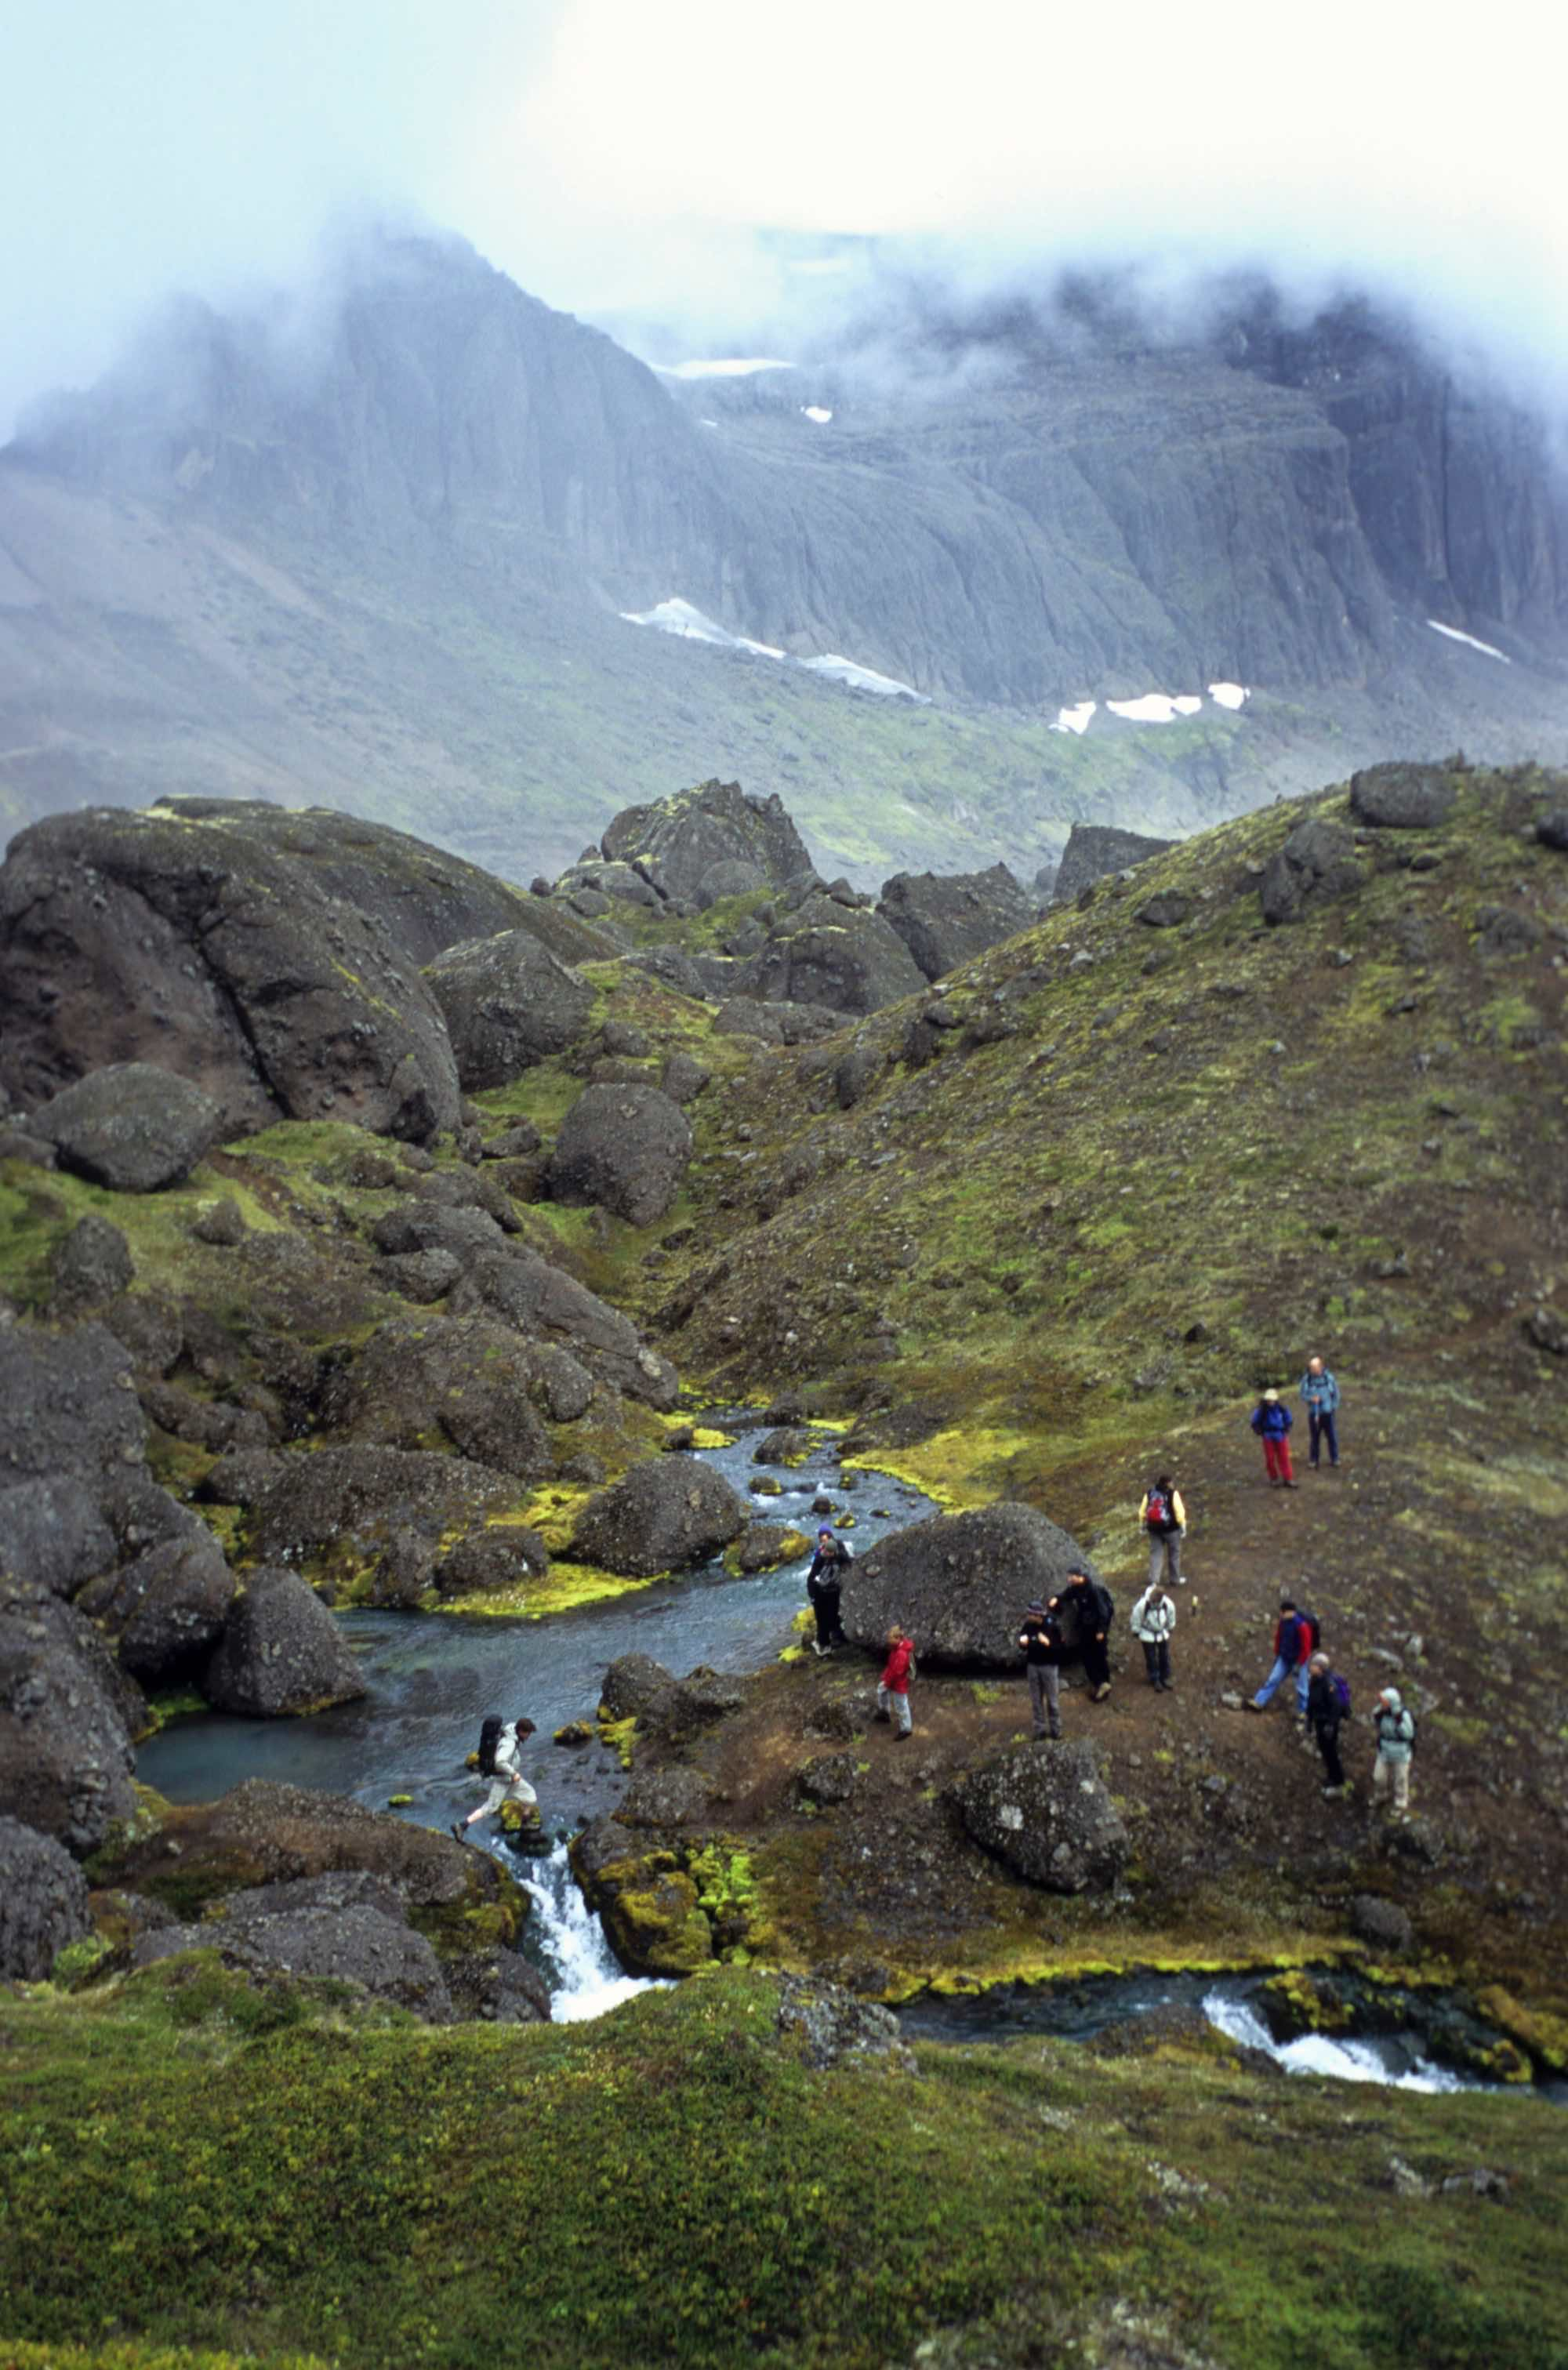 East Iceland in summer is full of mystical landscapes in summer.